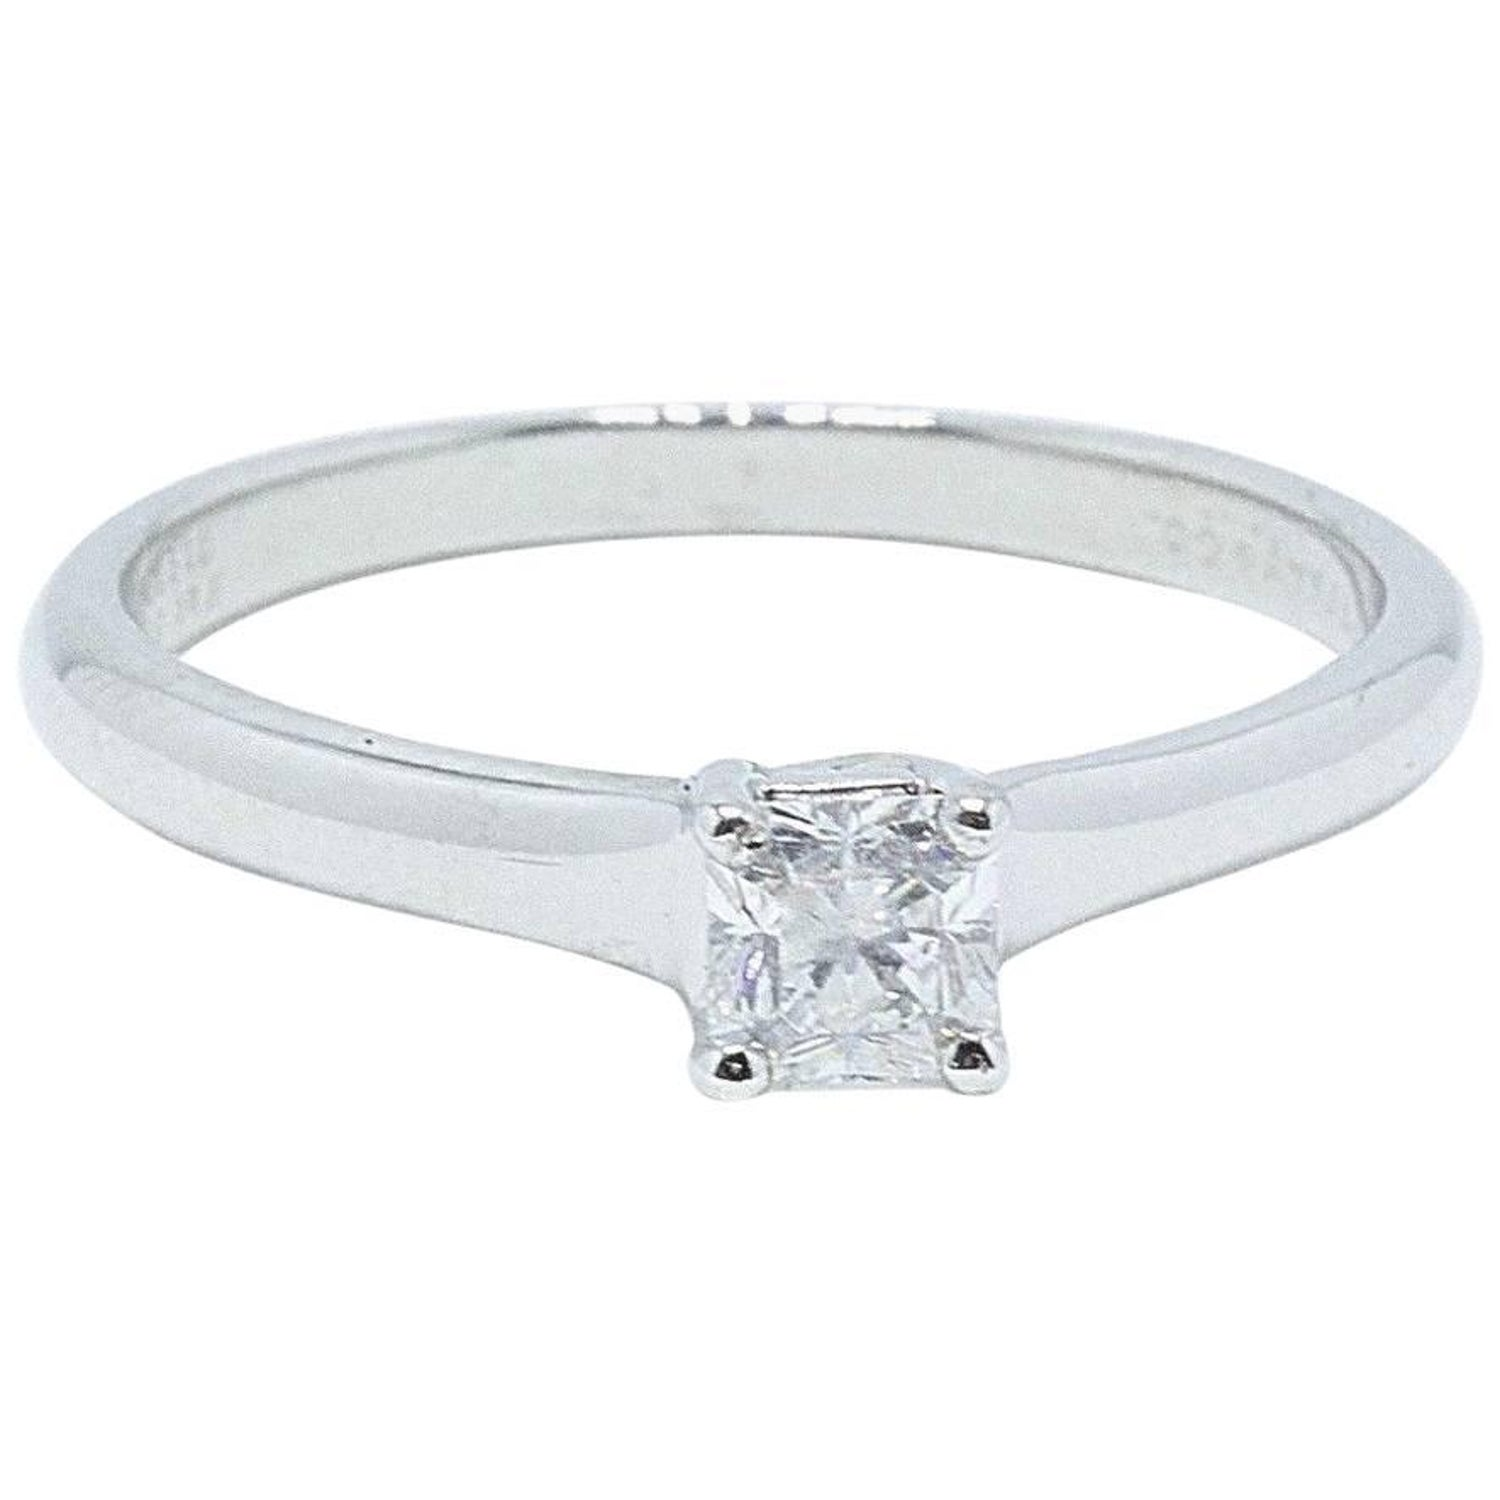 91171d14850 Tiffany and Co. Lucida 0.31 CT F VVS1 Diamond Engagement Ring in Platinum  Papers For Sale at 1stdibs